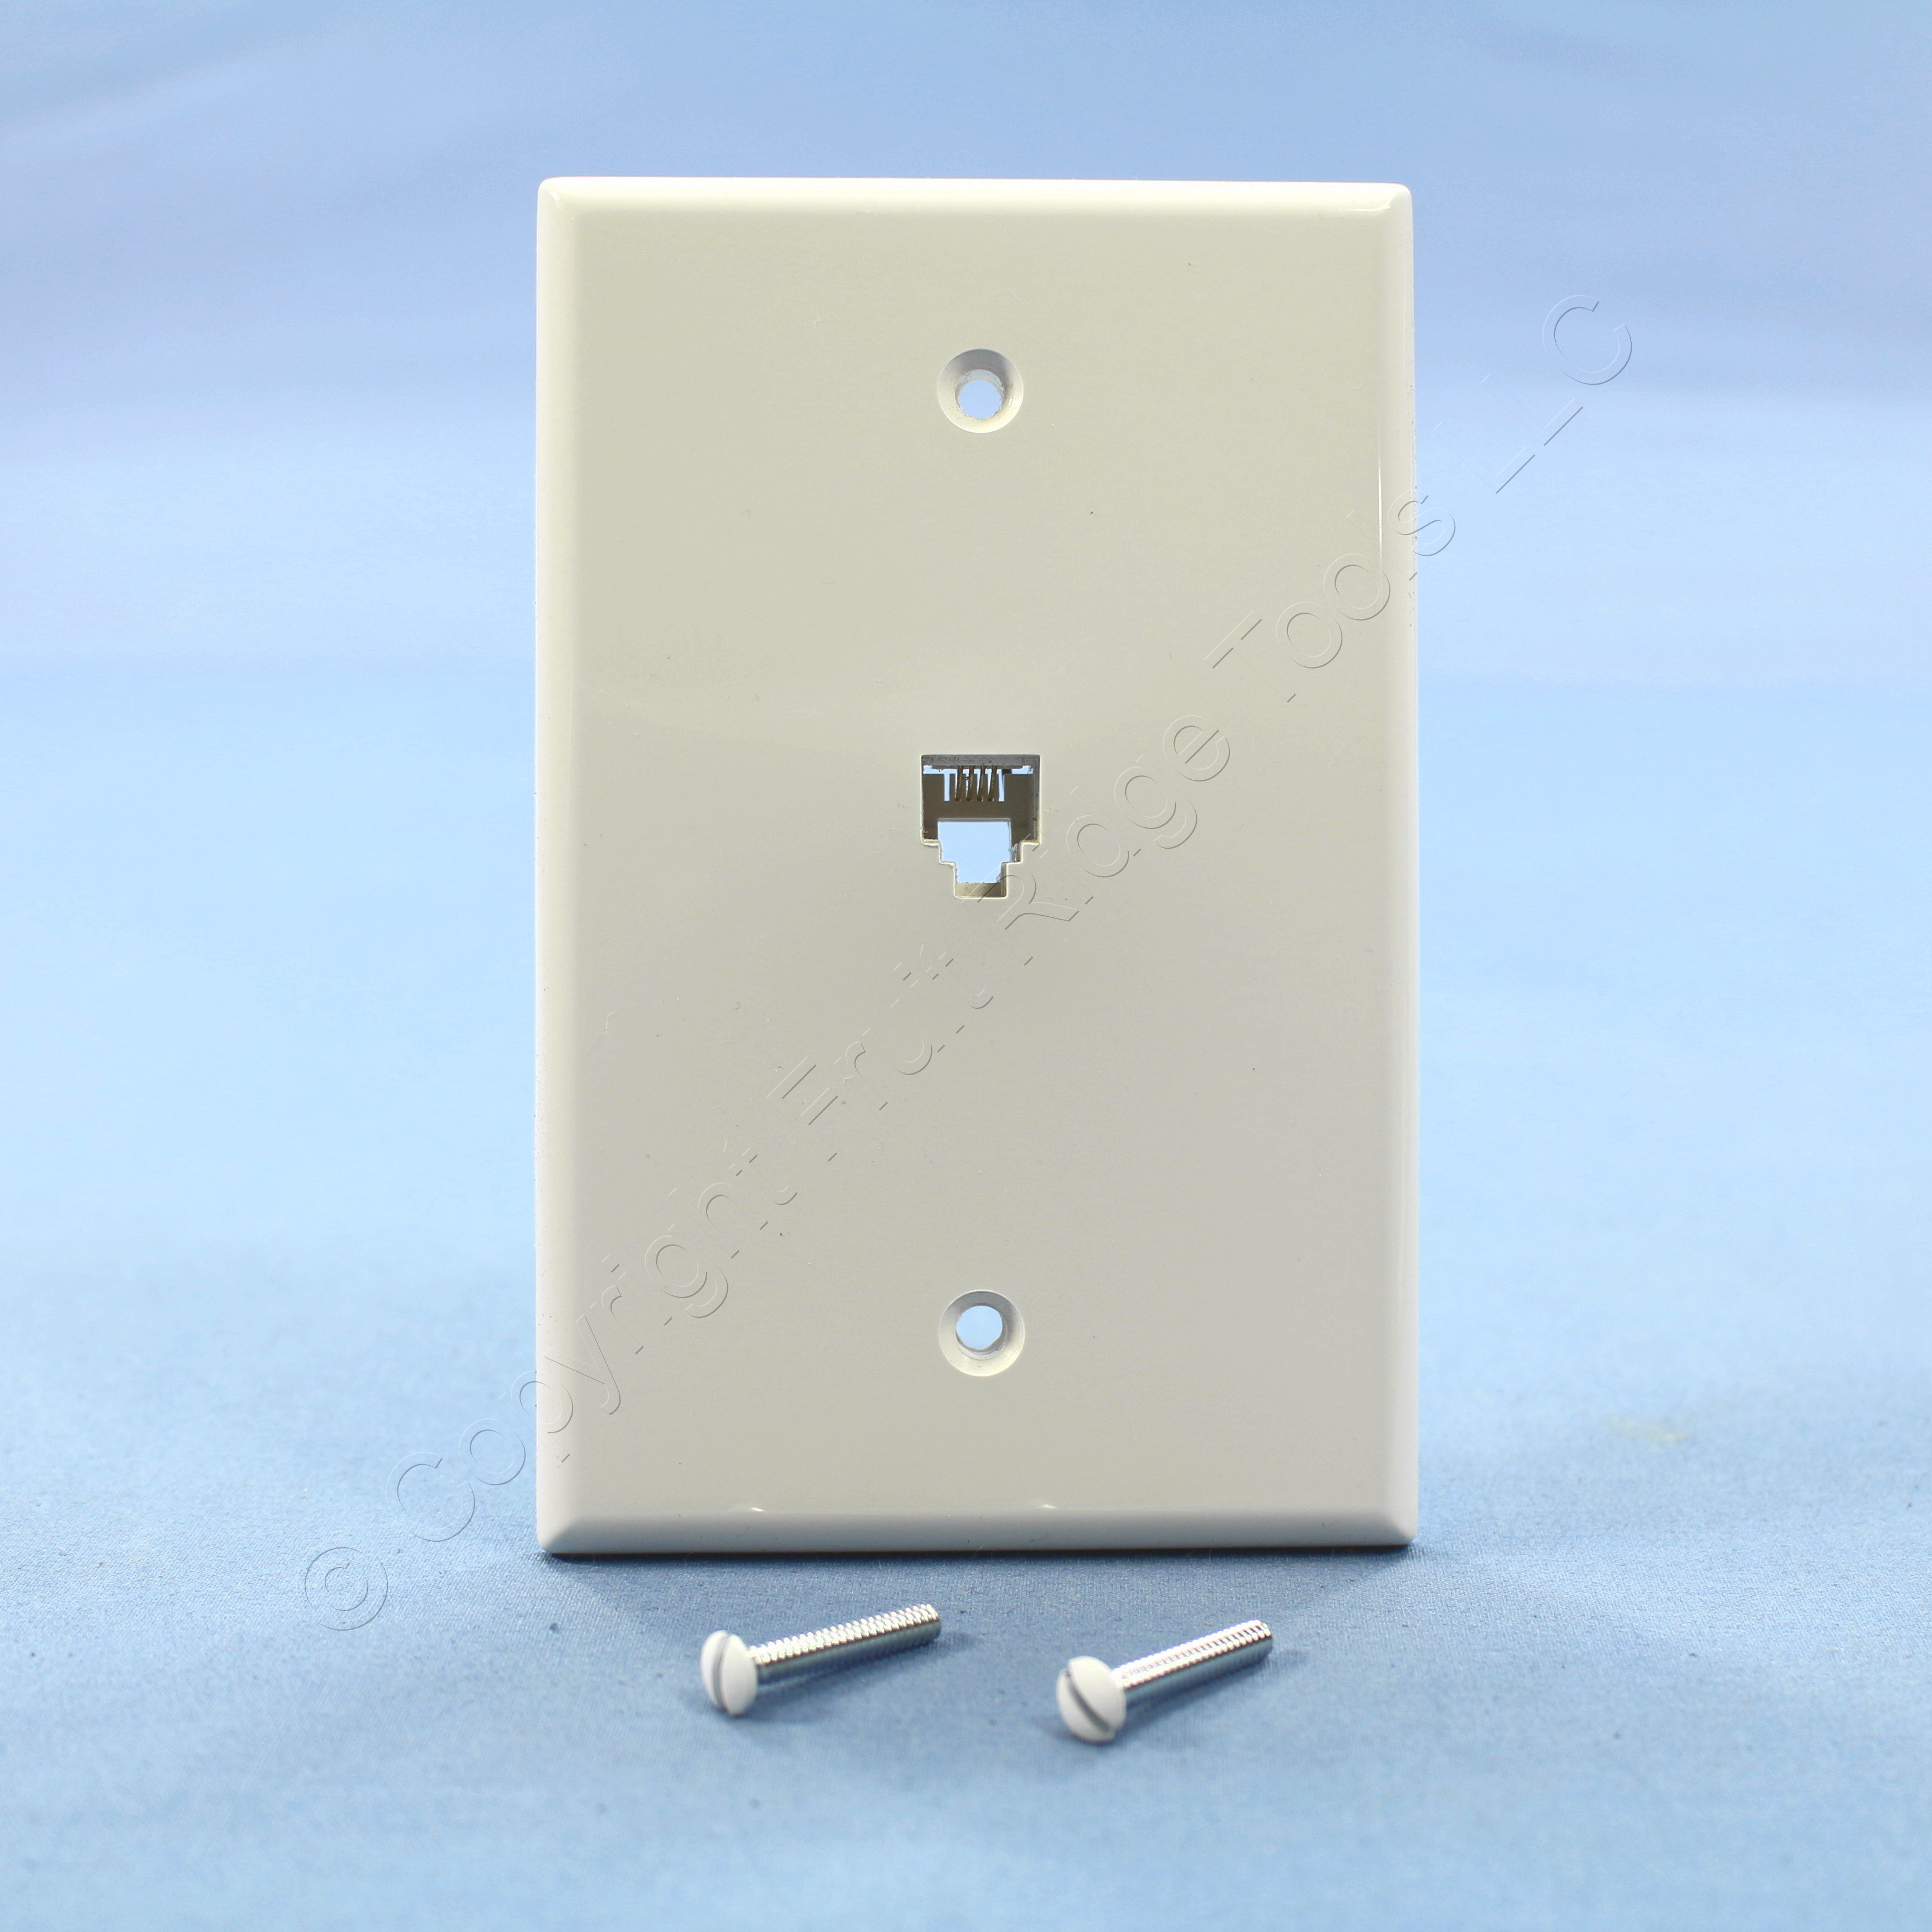 Phone Telephone Wall Jacks Leviton Wiring Diagram For Jack Plate White Large Position Wire 3456x3456